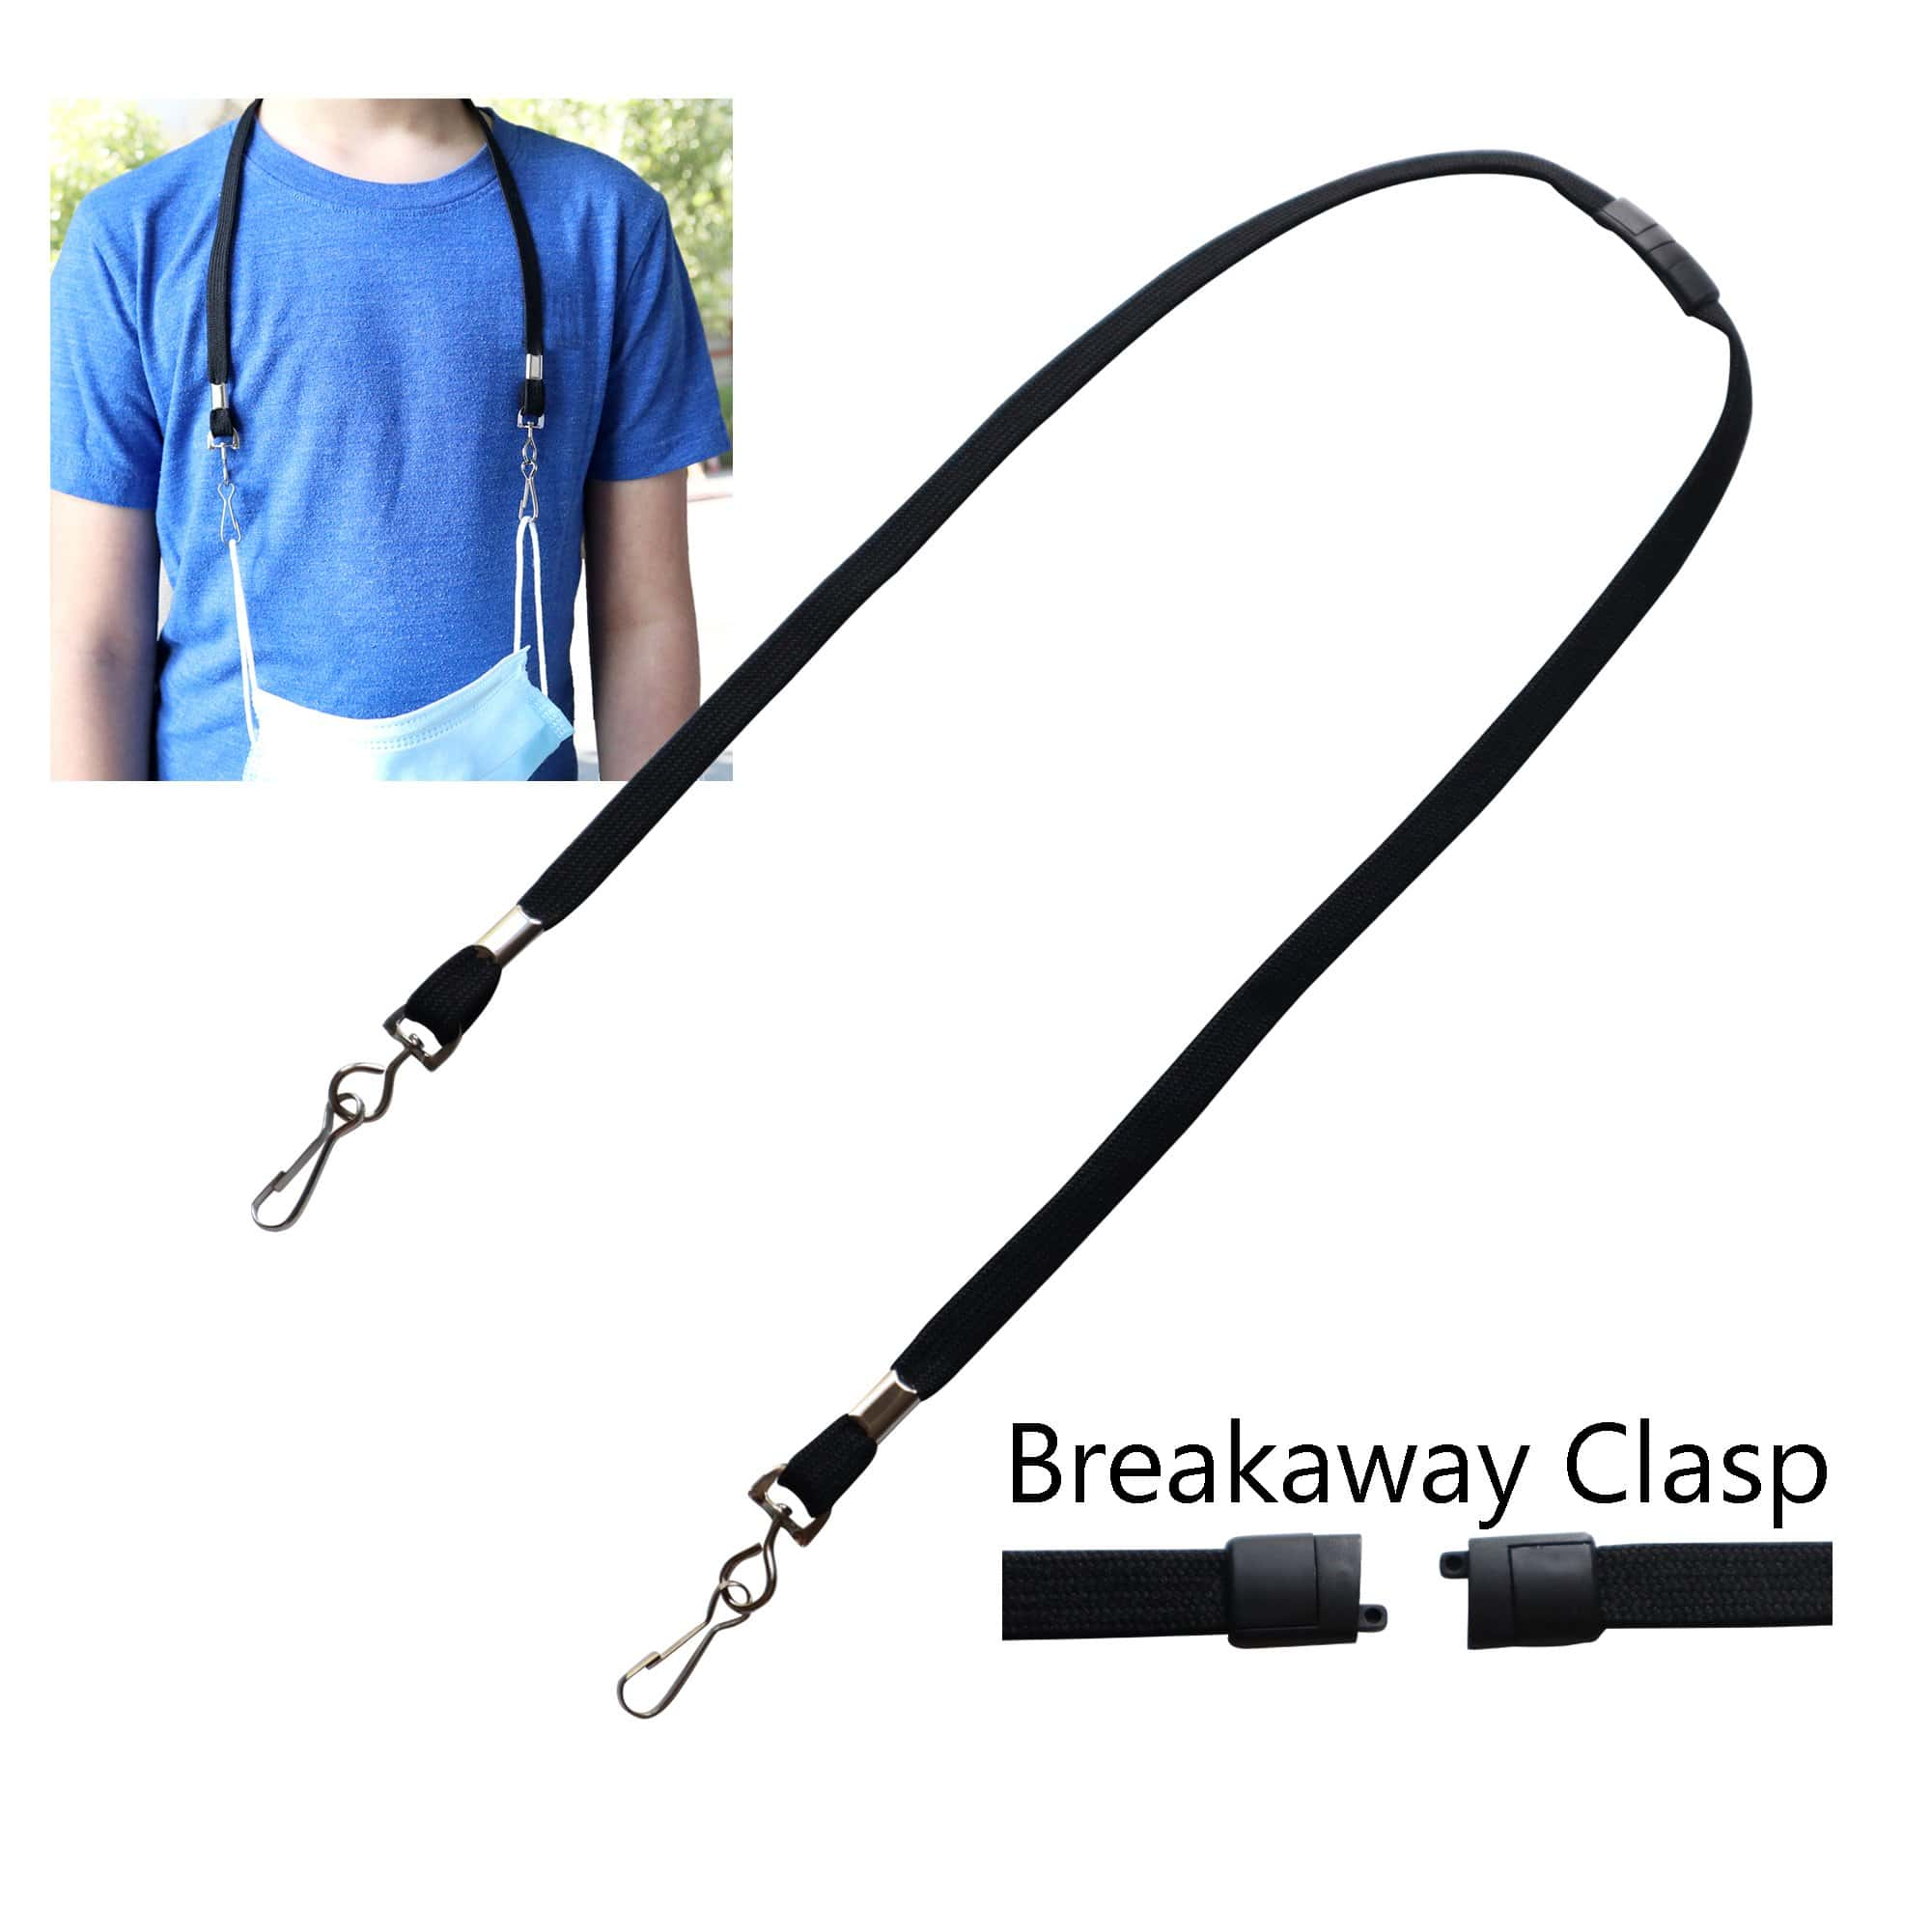 Kids Face Mask Lanyard / Hanger with Safety Breakaway Clasp - Short 12 Inch Length for Childrens Facemasks